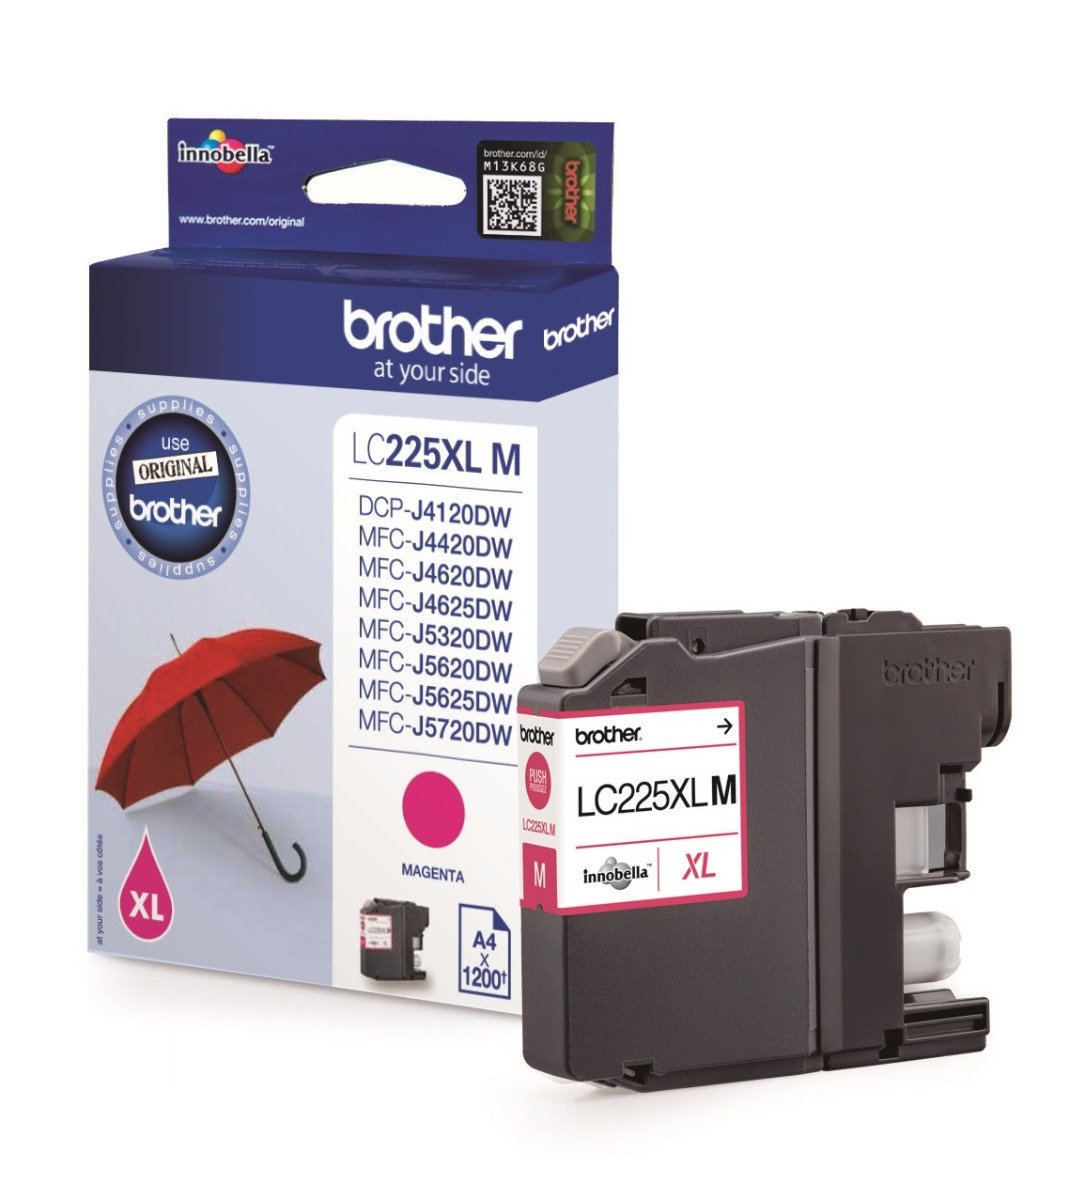 Genuine Brother LC225XL High Capacity Magenta Ink Cartridge (LC225XLM Inkjet Printer Cartridge)